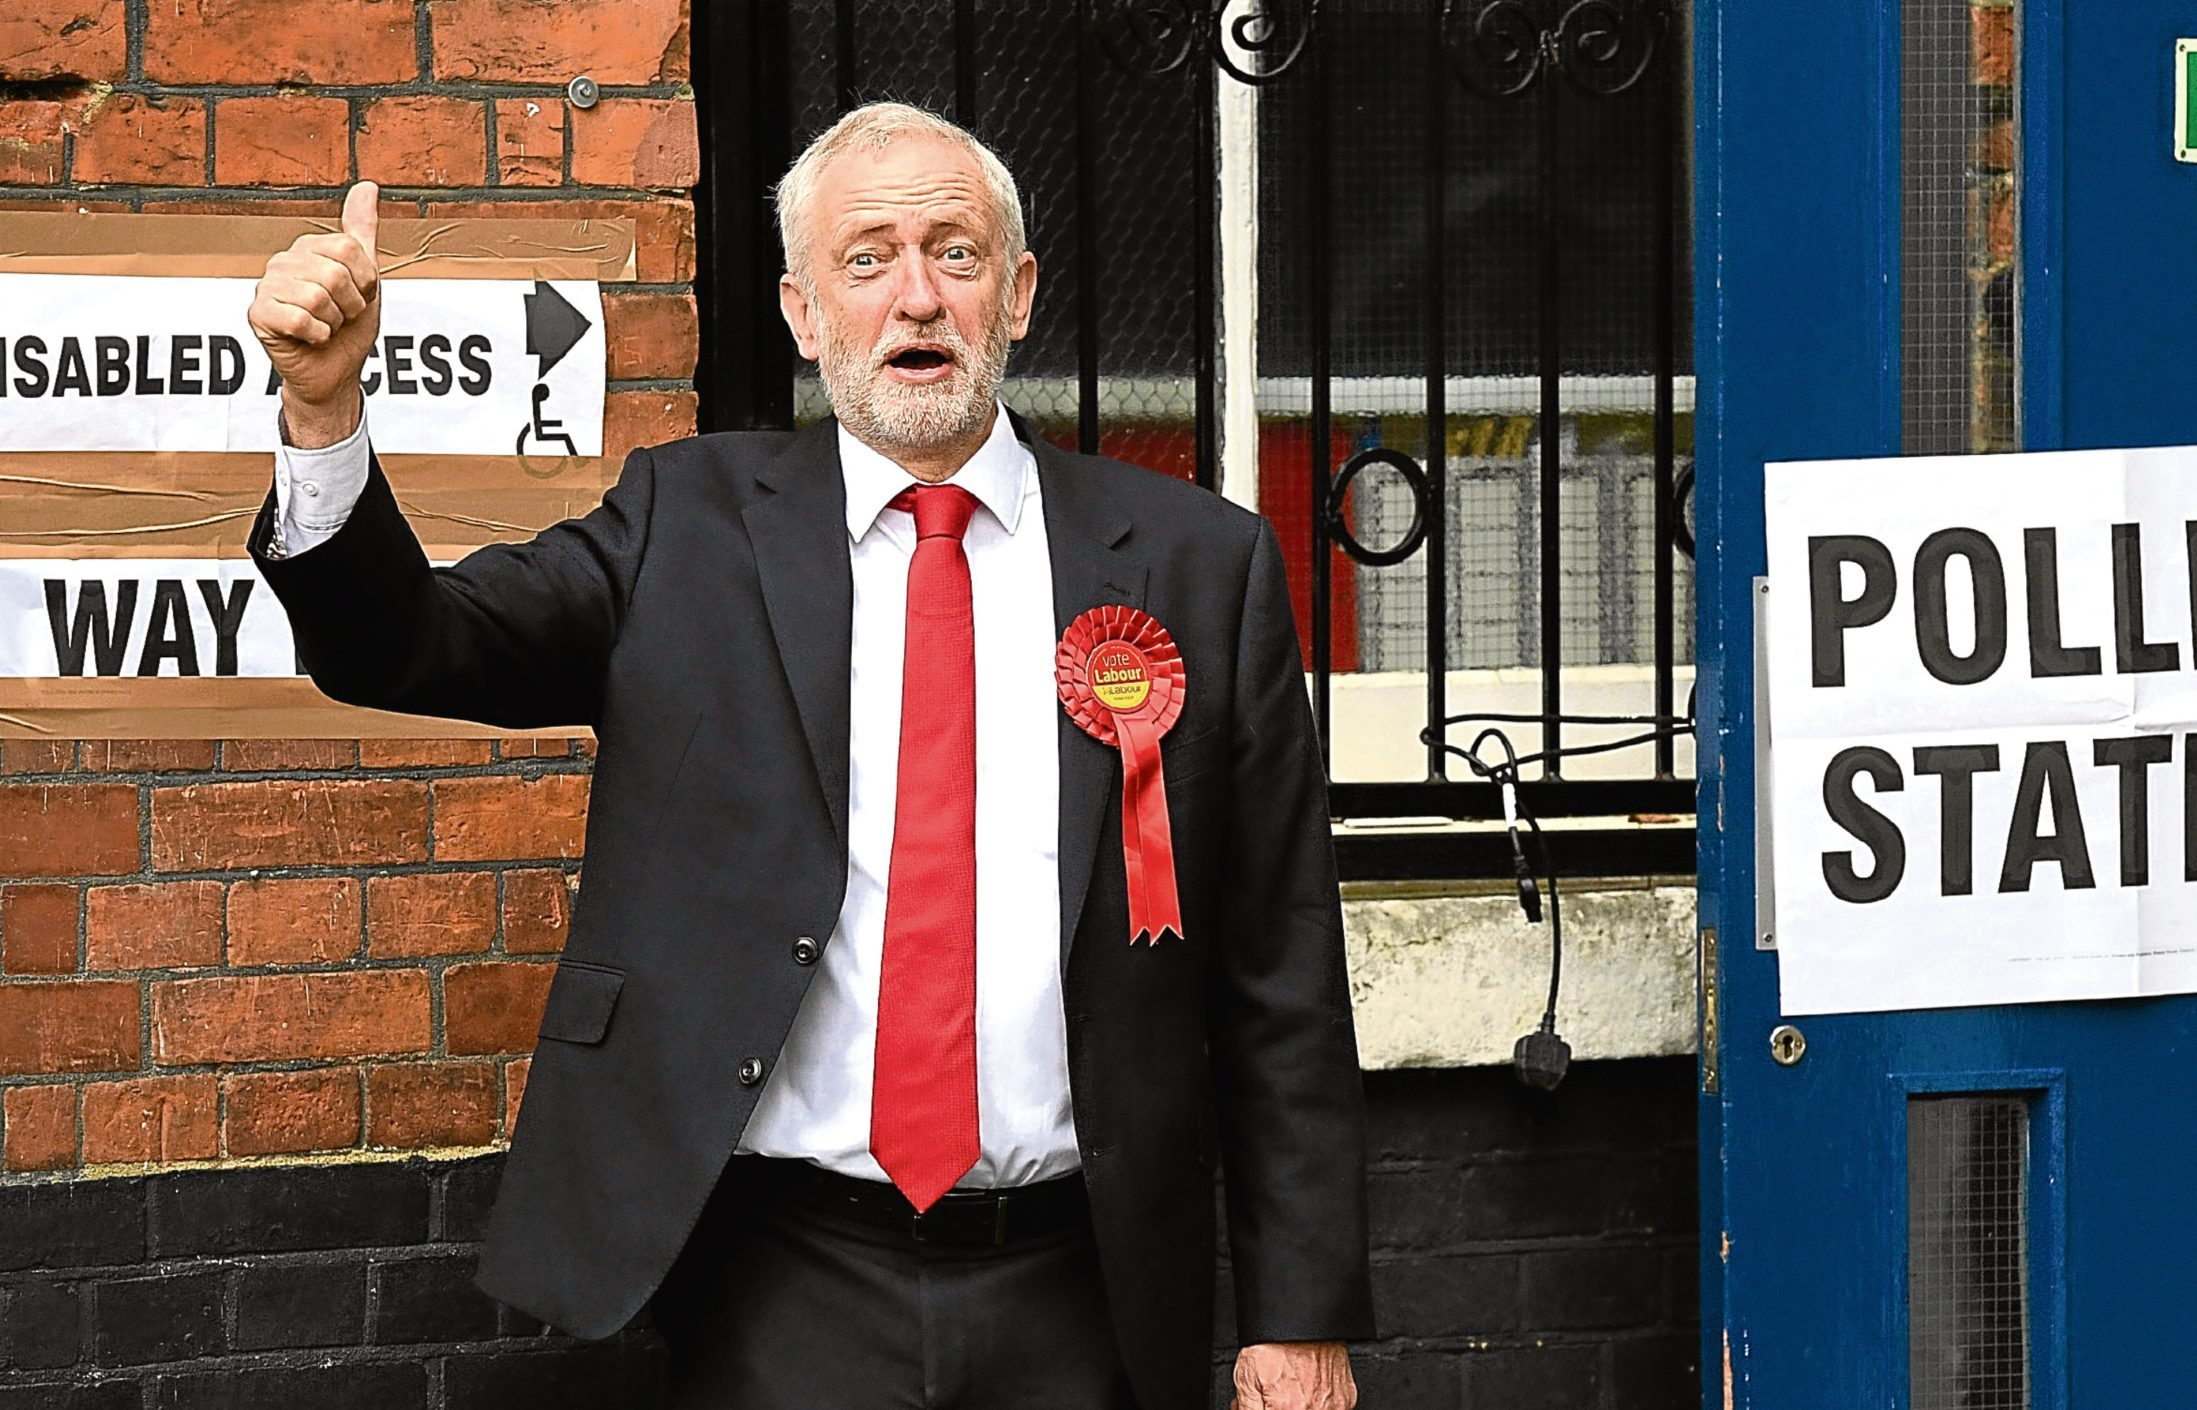 Labour party leader Jeremy Corbyn casts his vote at a polling station (Leon Neal/Getty Images)